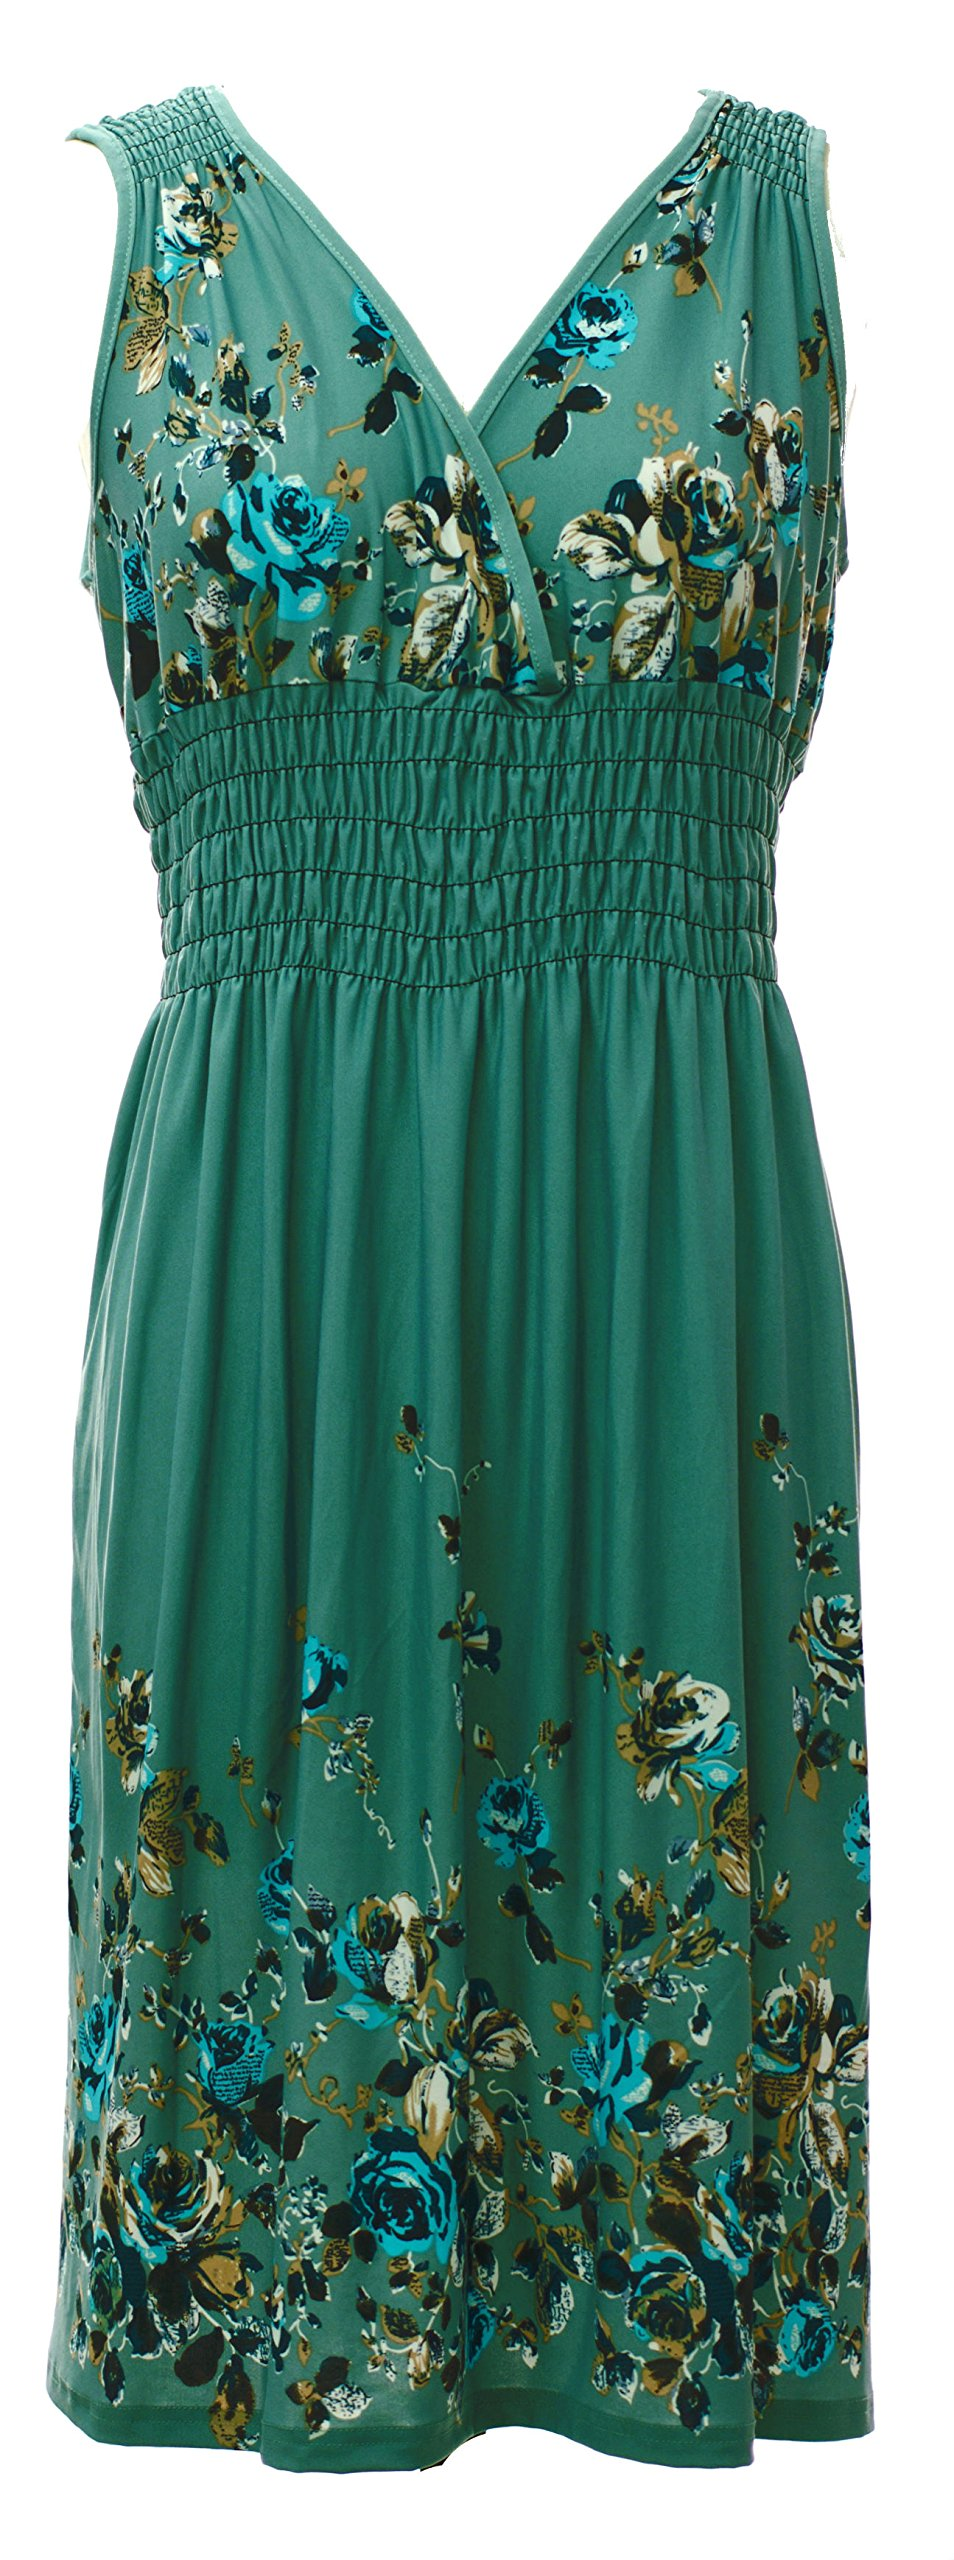 Plum Feathers Vibrant V-Neck Knee Length Dress - Assorted Styles Plus & Regular Sizes Soft Floral Green 1X